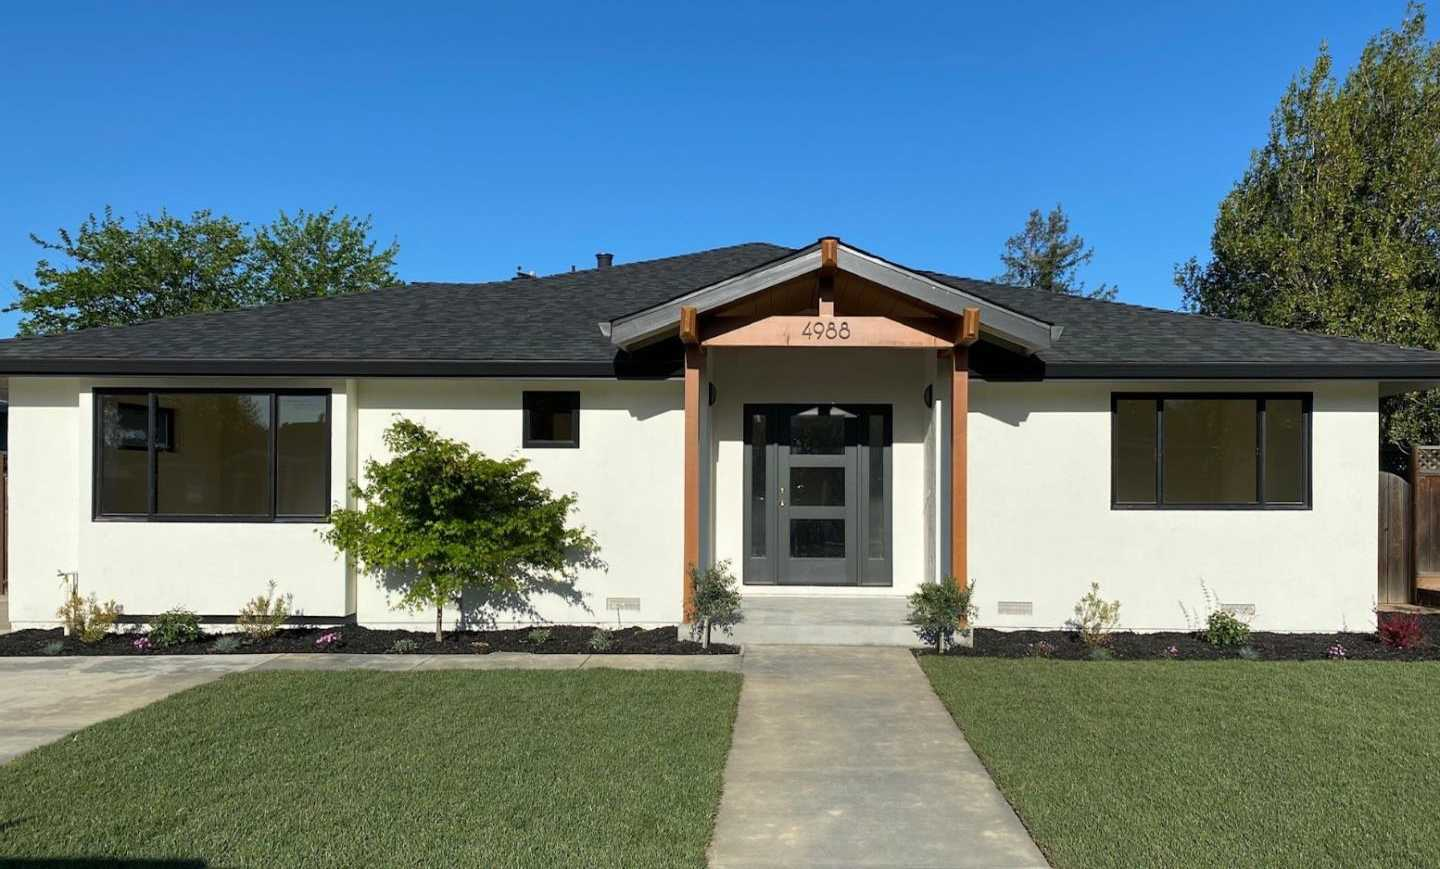 $1,985,000 - 4Br/3Ba -  for Sale in San Jose